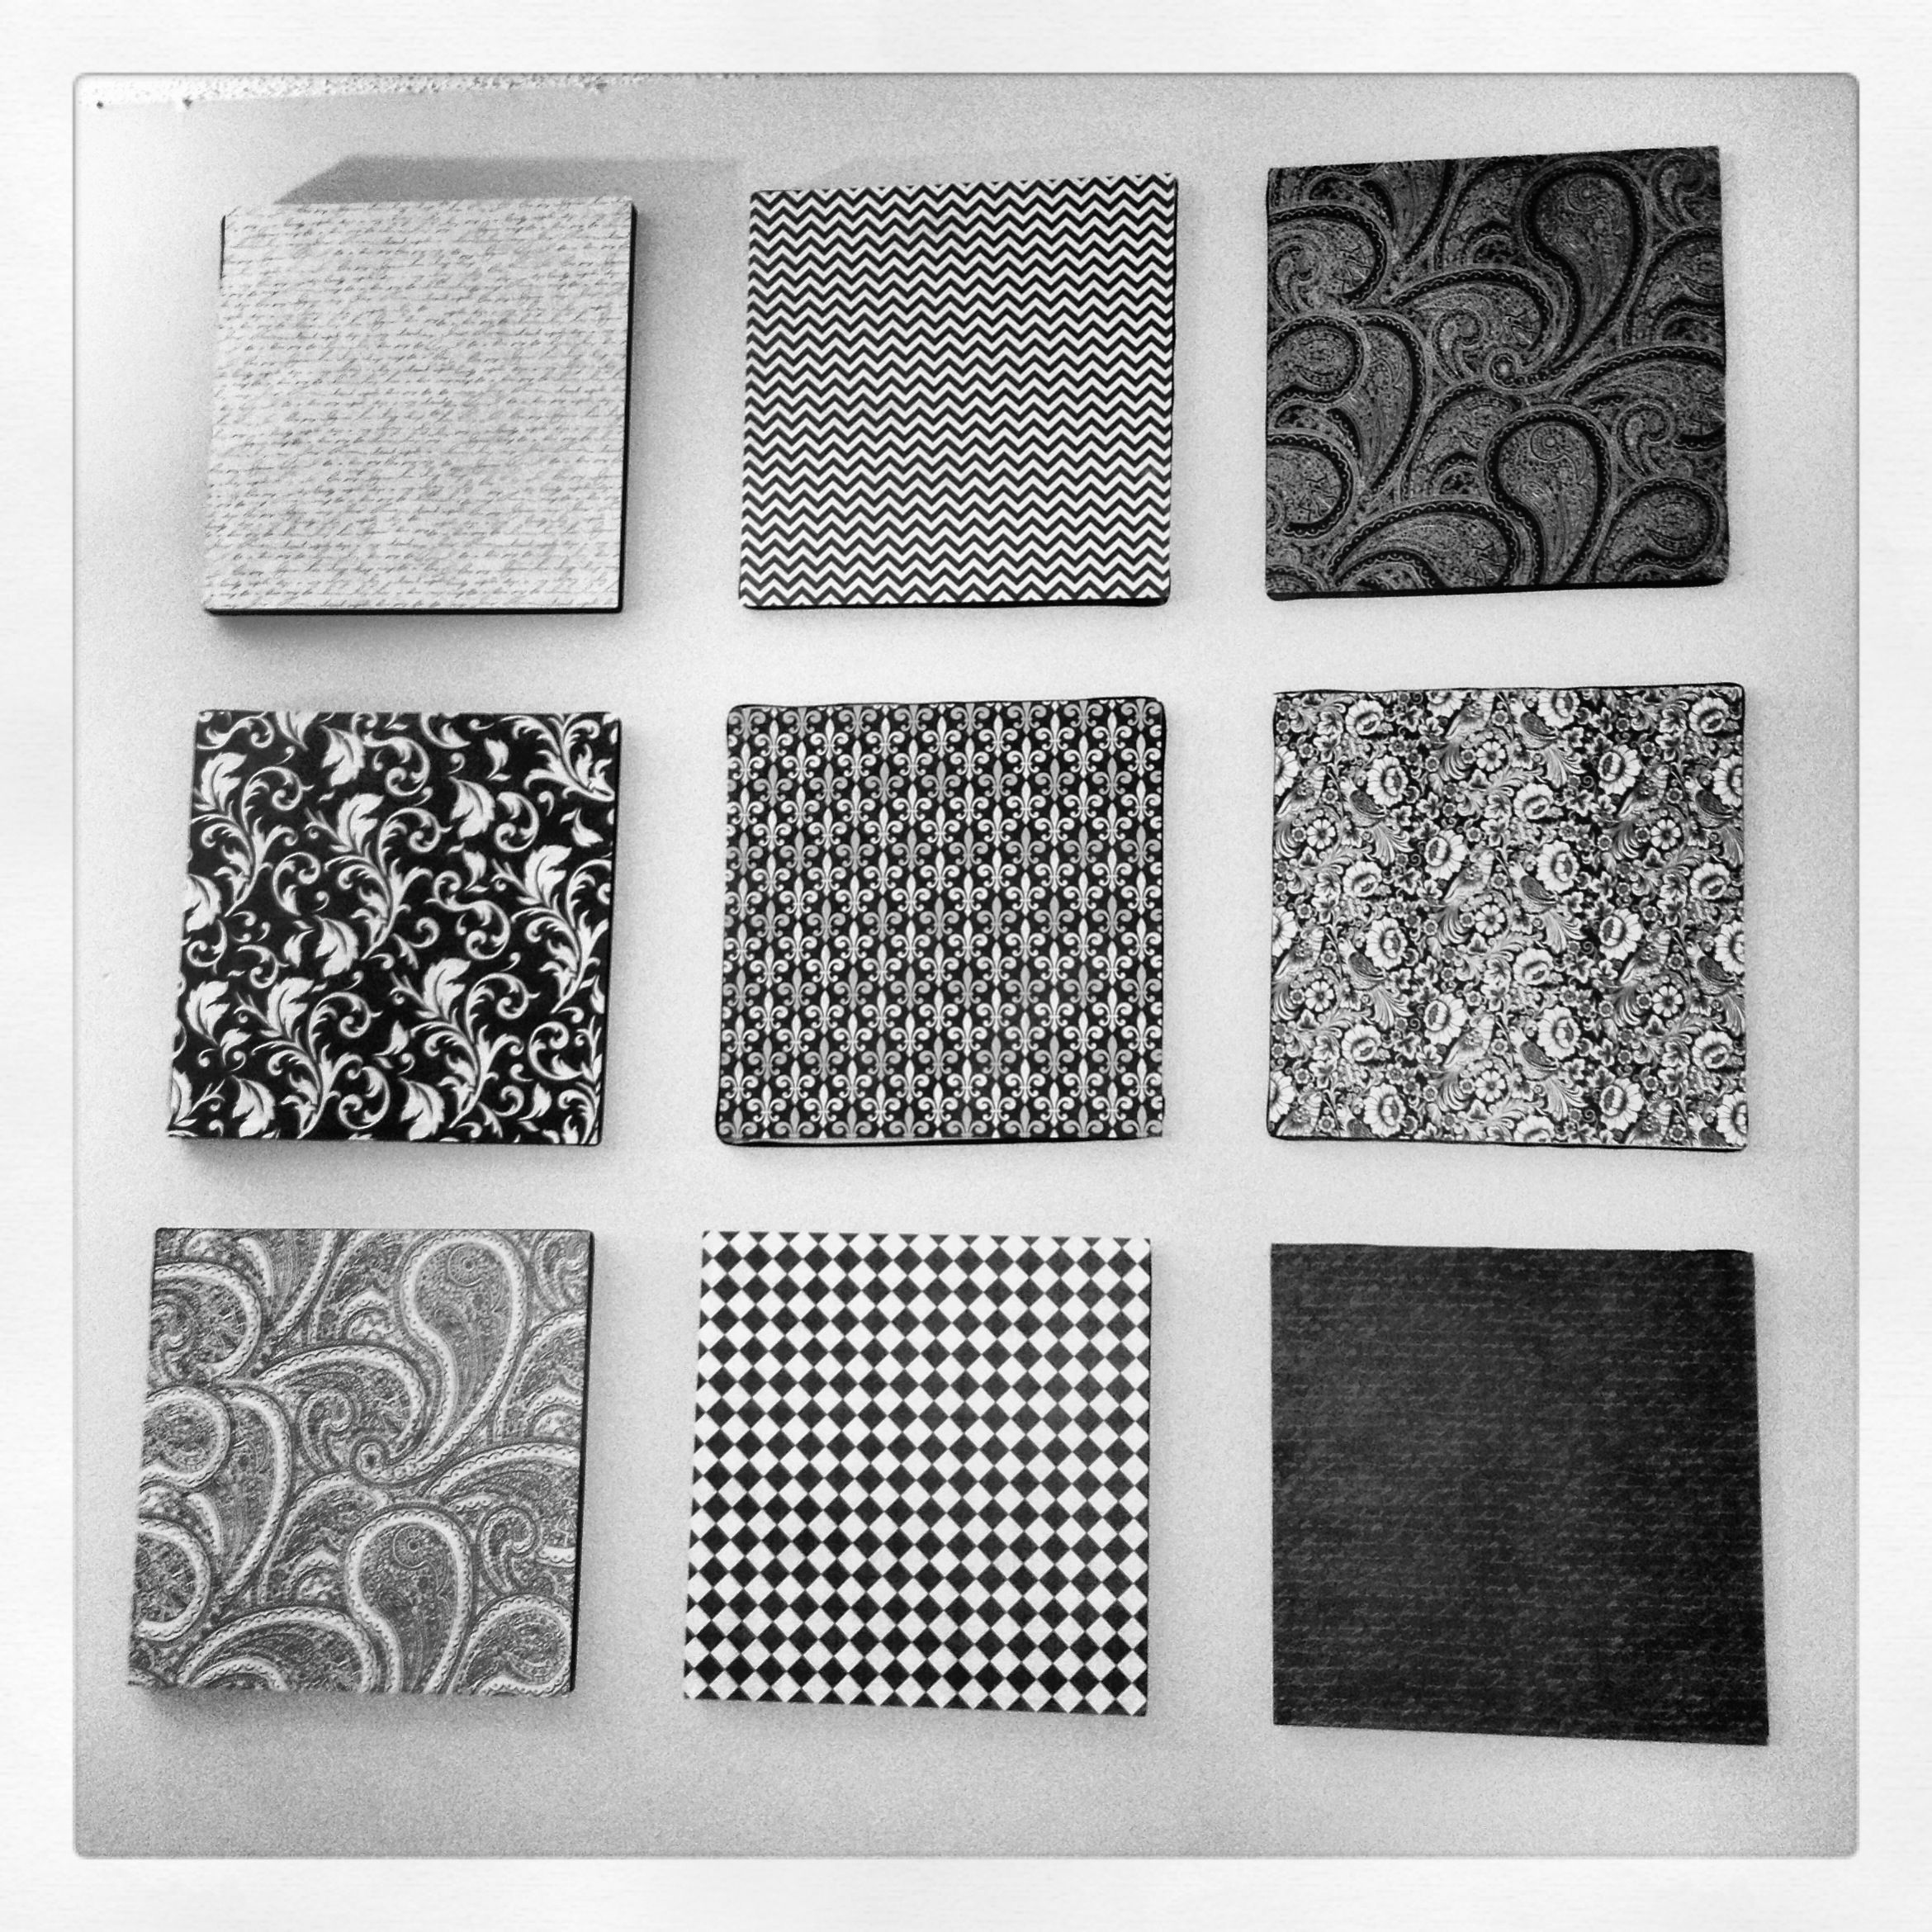 Diy Wall Art Under 10 I Found 9 12x12 Styrofoam Squares At Hobby Lobby Picked Out 9 12x12 Sheets Of Card Stock Styrofoam Wall Art Diy Wall Art Diy Decor